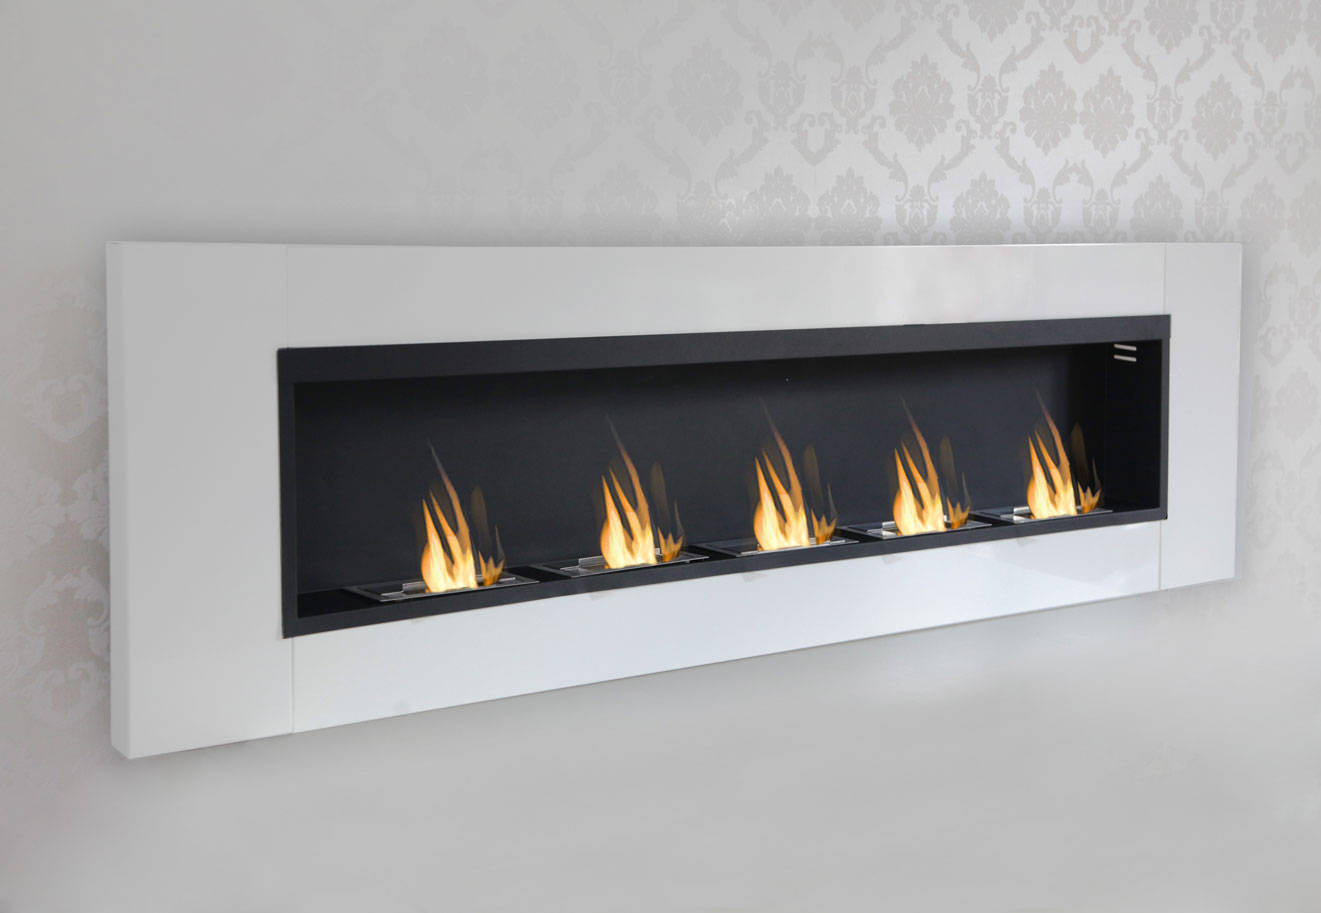 5 burner luxury chimney bio ethanol gel fireplace wall cheminee white high gloss ebay. Black Bedroom Furniture Sets. Home Design Ideas